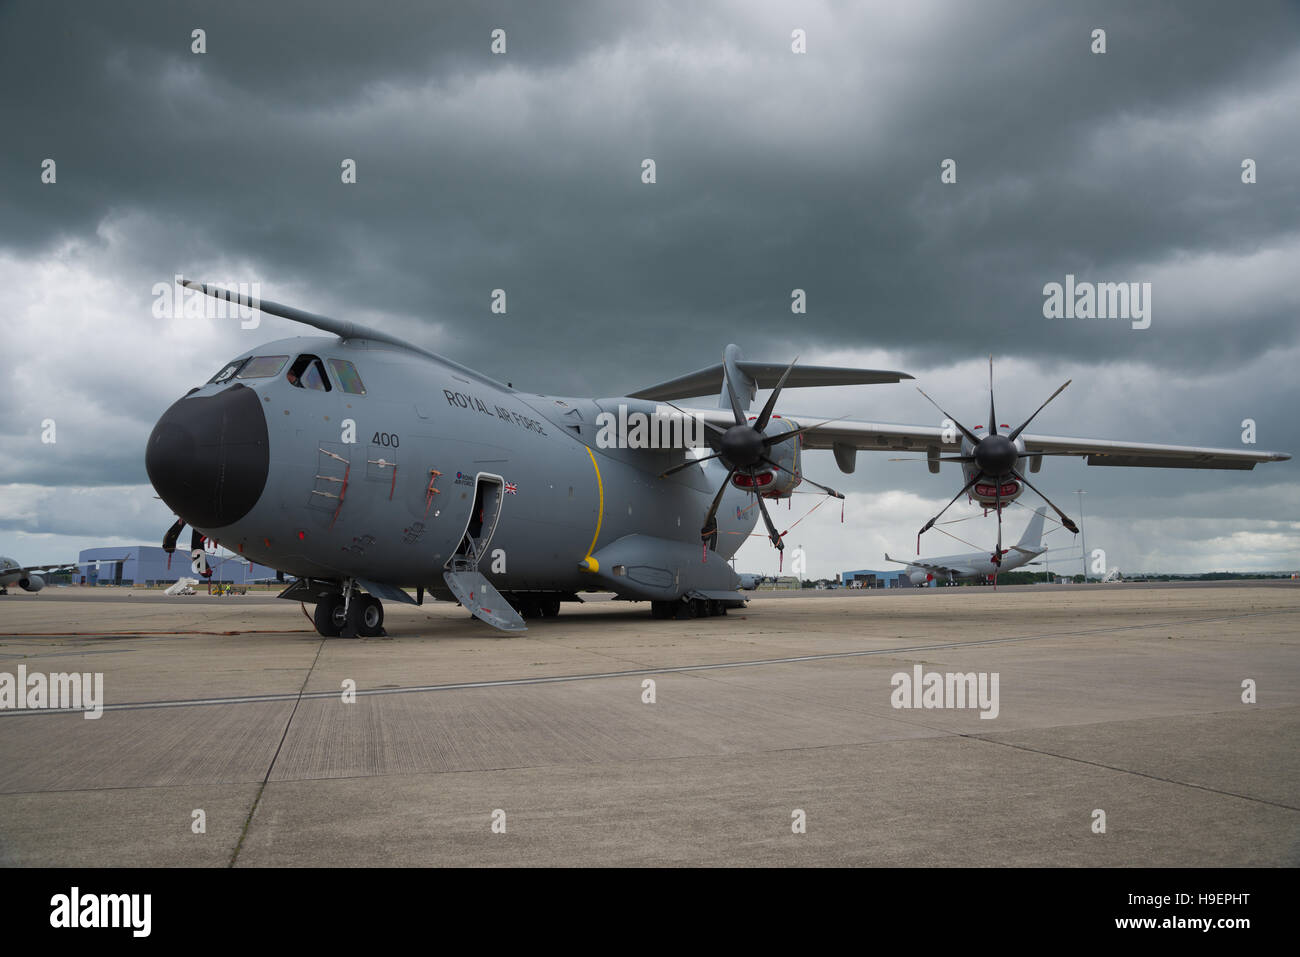 Airbus A400M Atlas transport plane. Royal Airforce military aircraft. - Stock Image